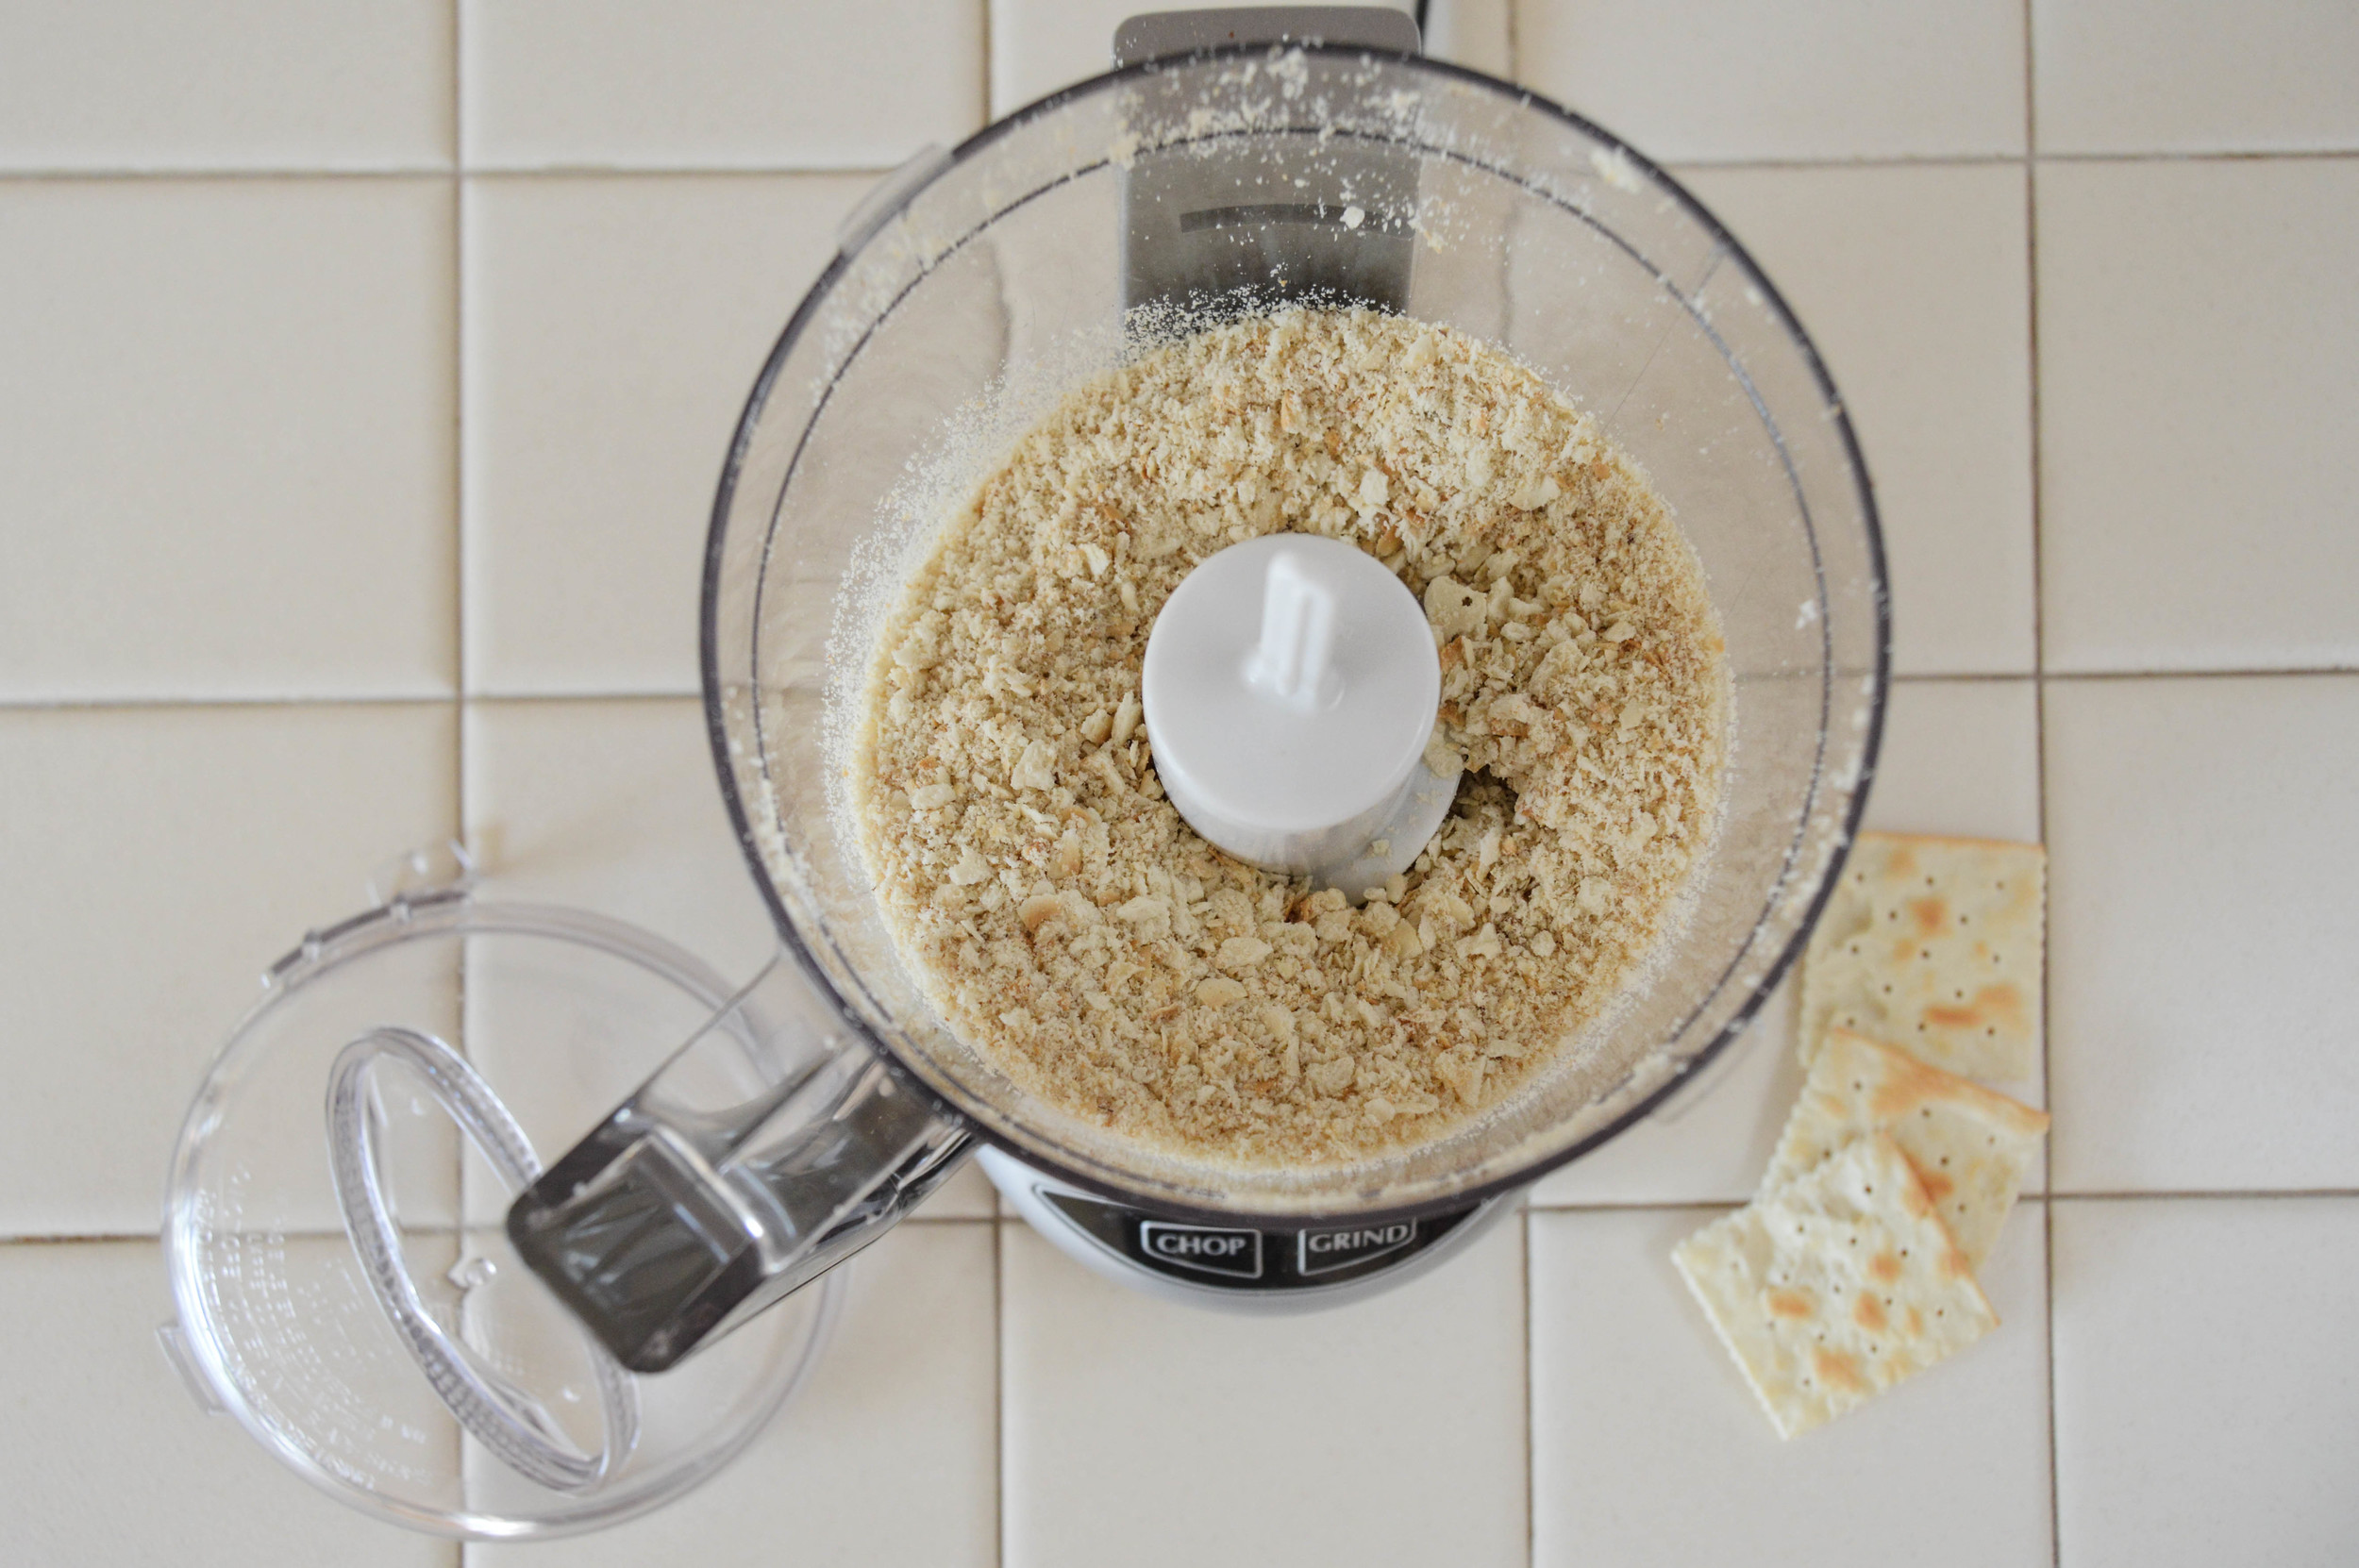 Chop crackers into fine crumbs. Set aside. Repeat with walnuts. If you do not have a food processor, crush crackers in a zip lock bag with rolling pin and finely chop nuts with a knife.